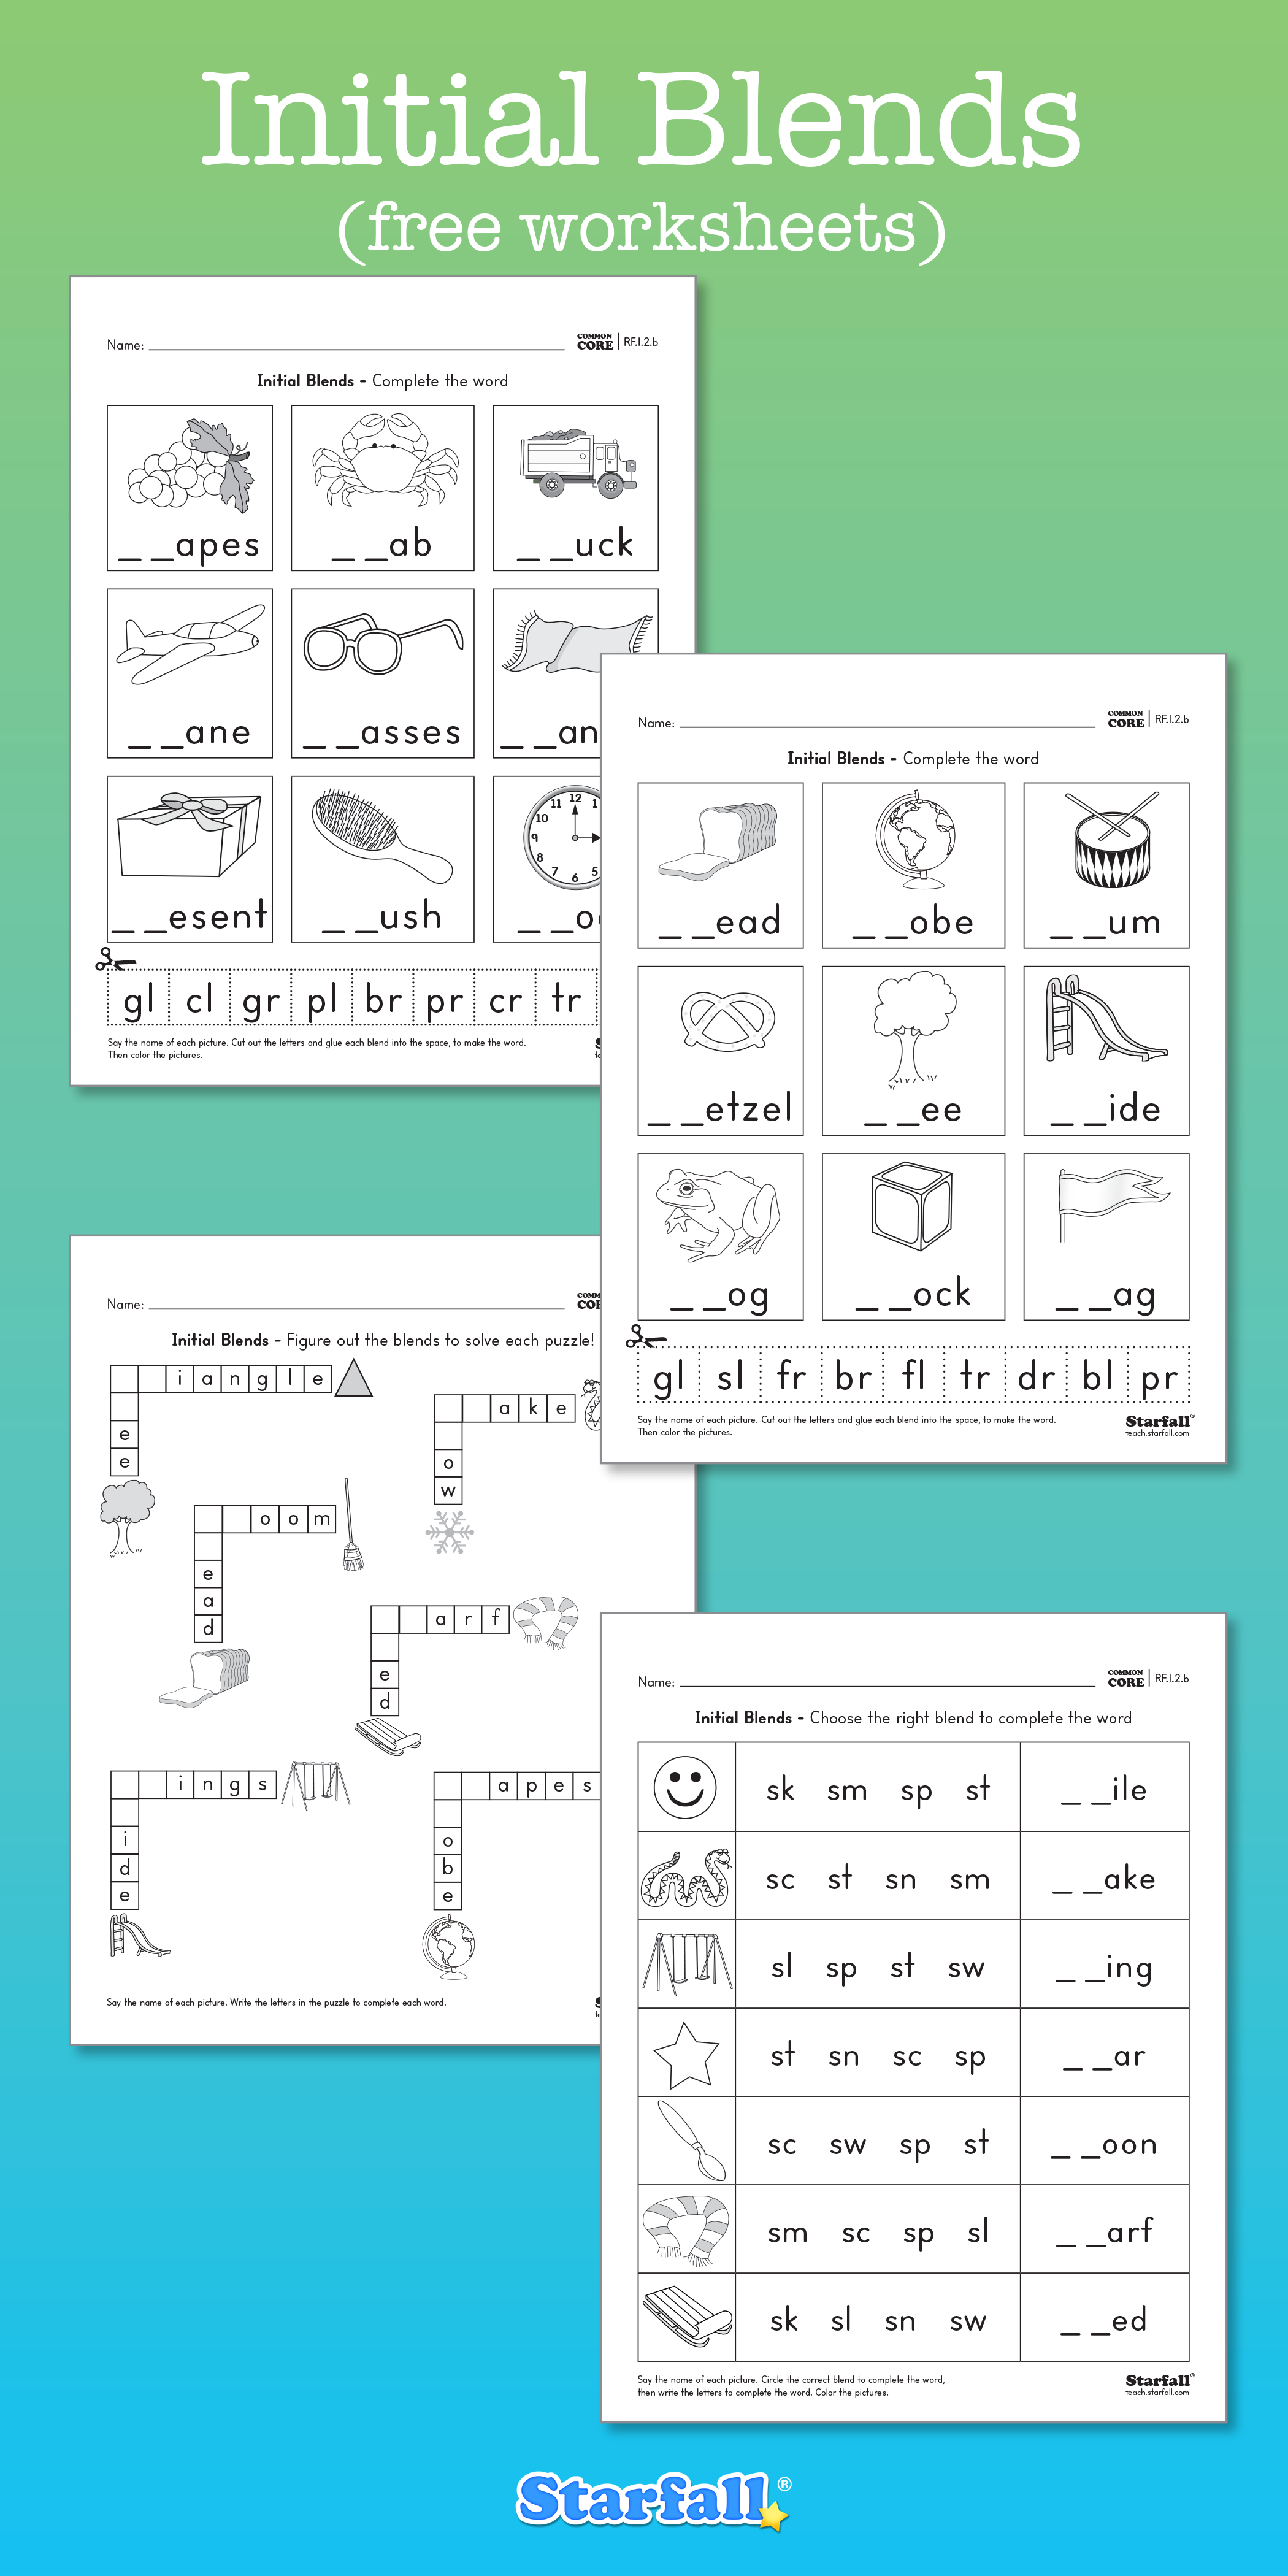 Worksheets Starfall Worksheets want to give your child some practice with initial blends check out these new downloadable